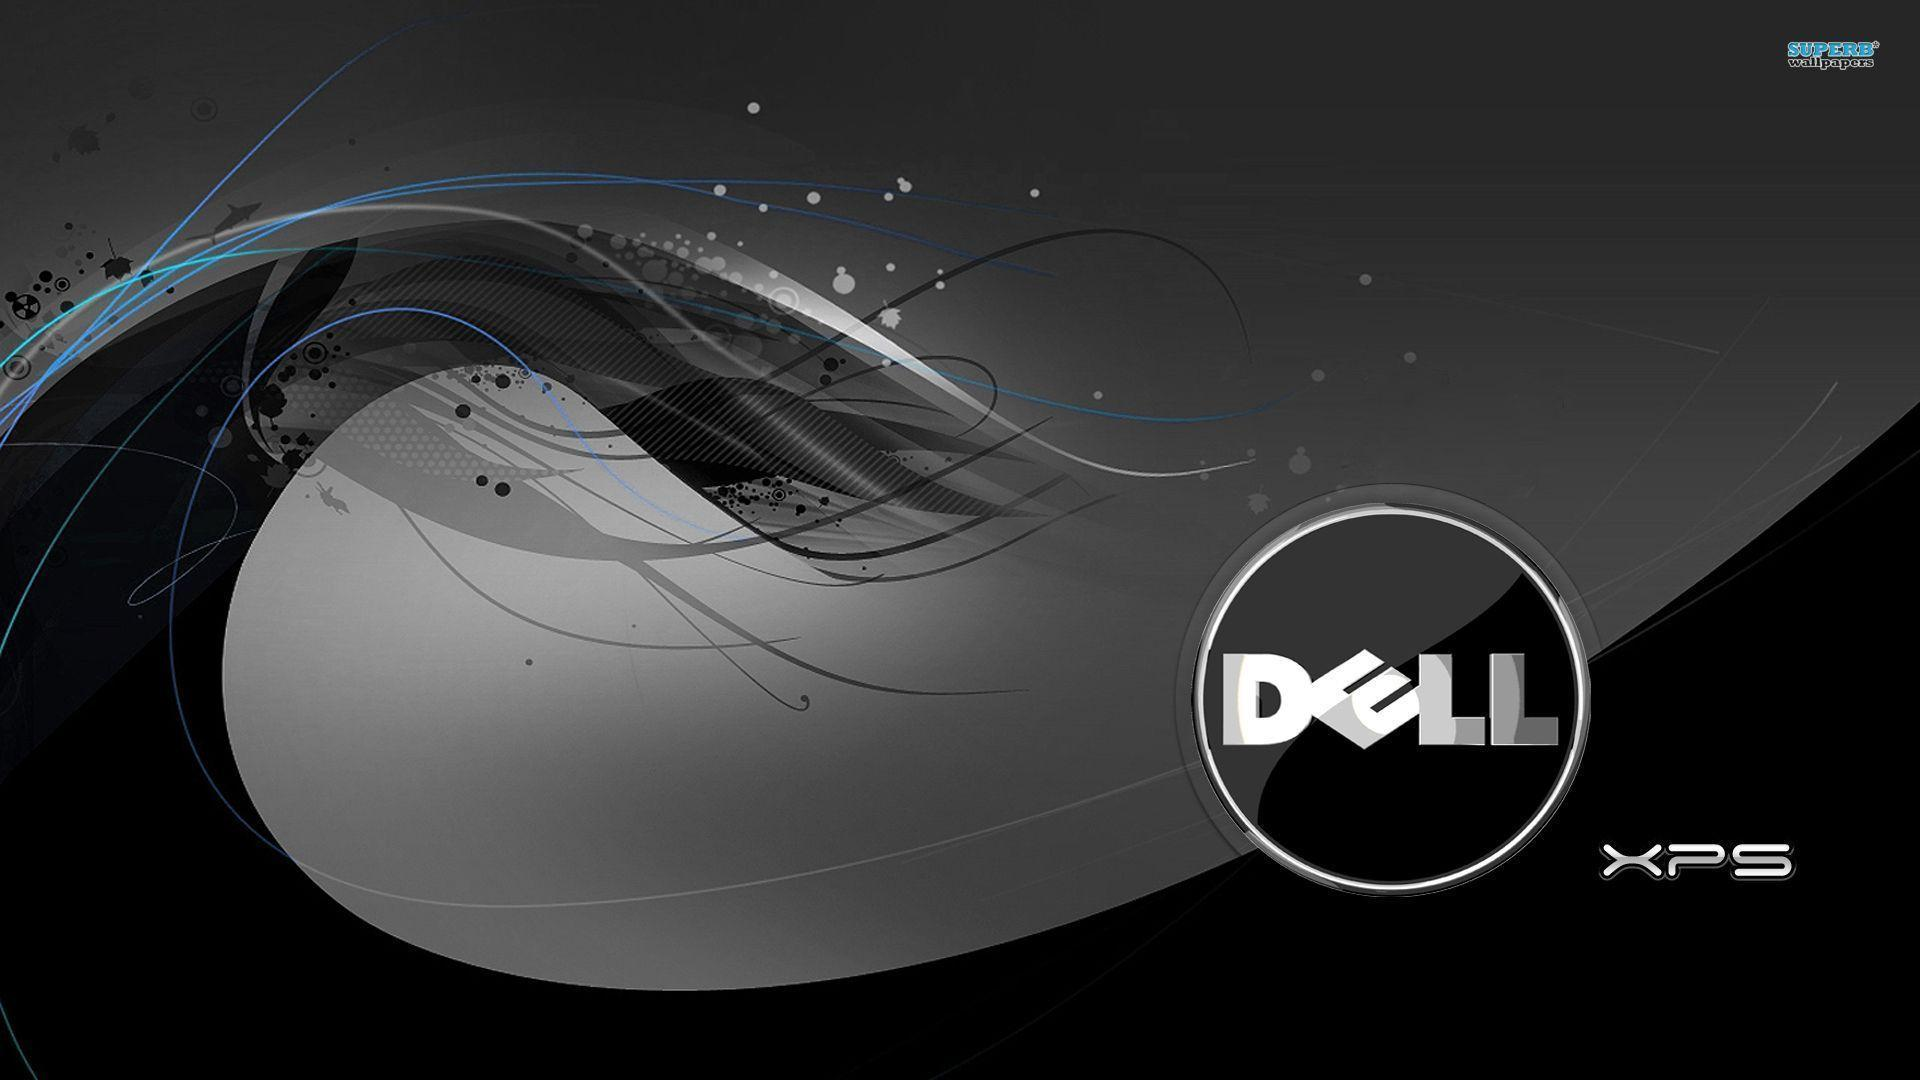 desktop wallpaper dell 38 - photo #19